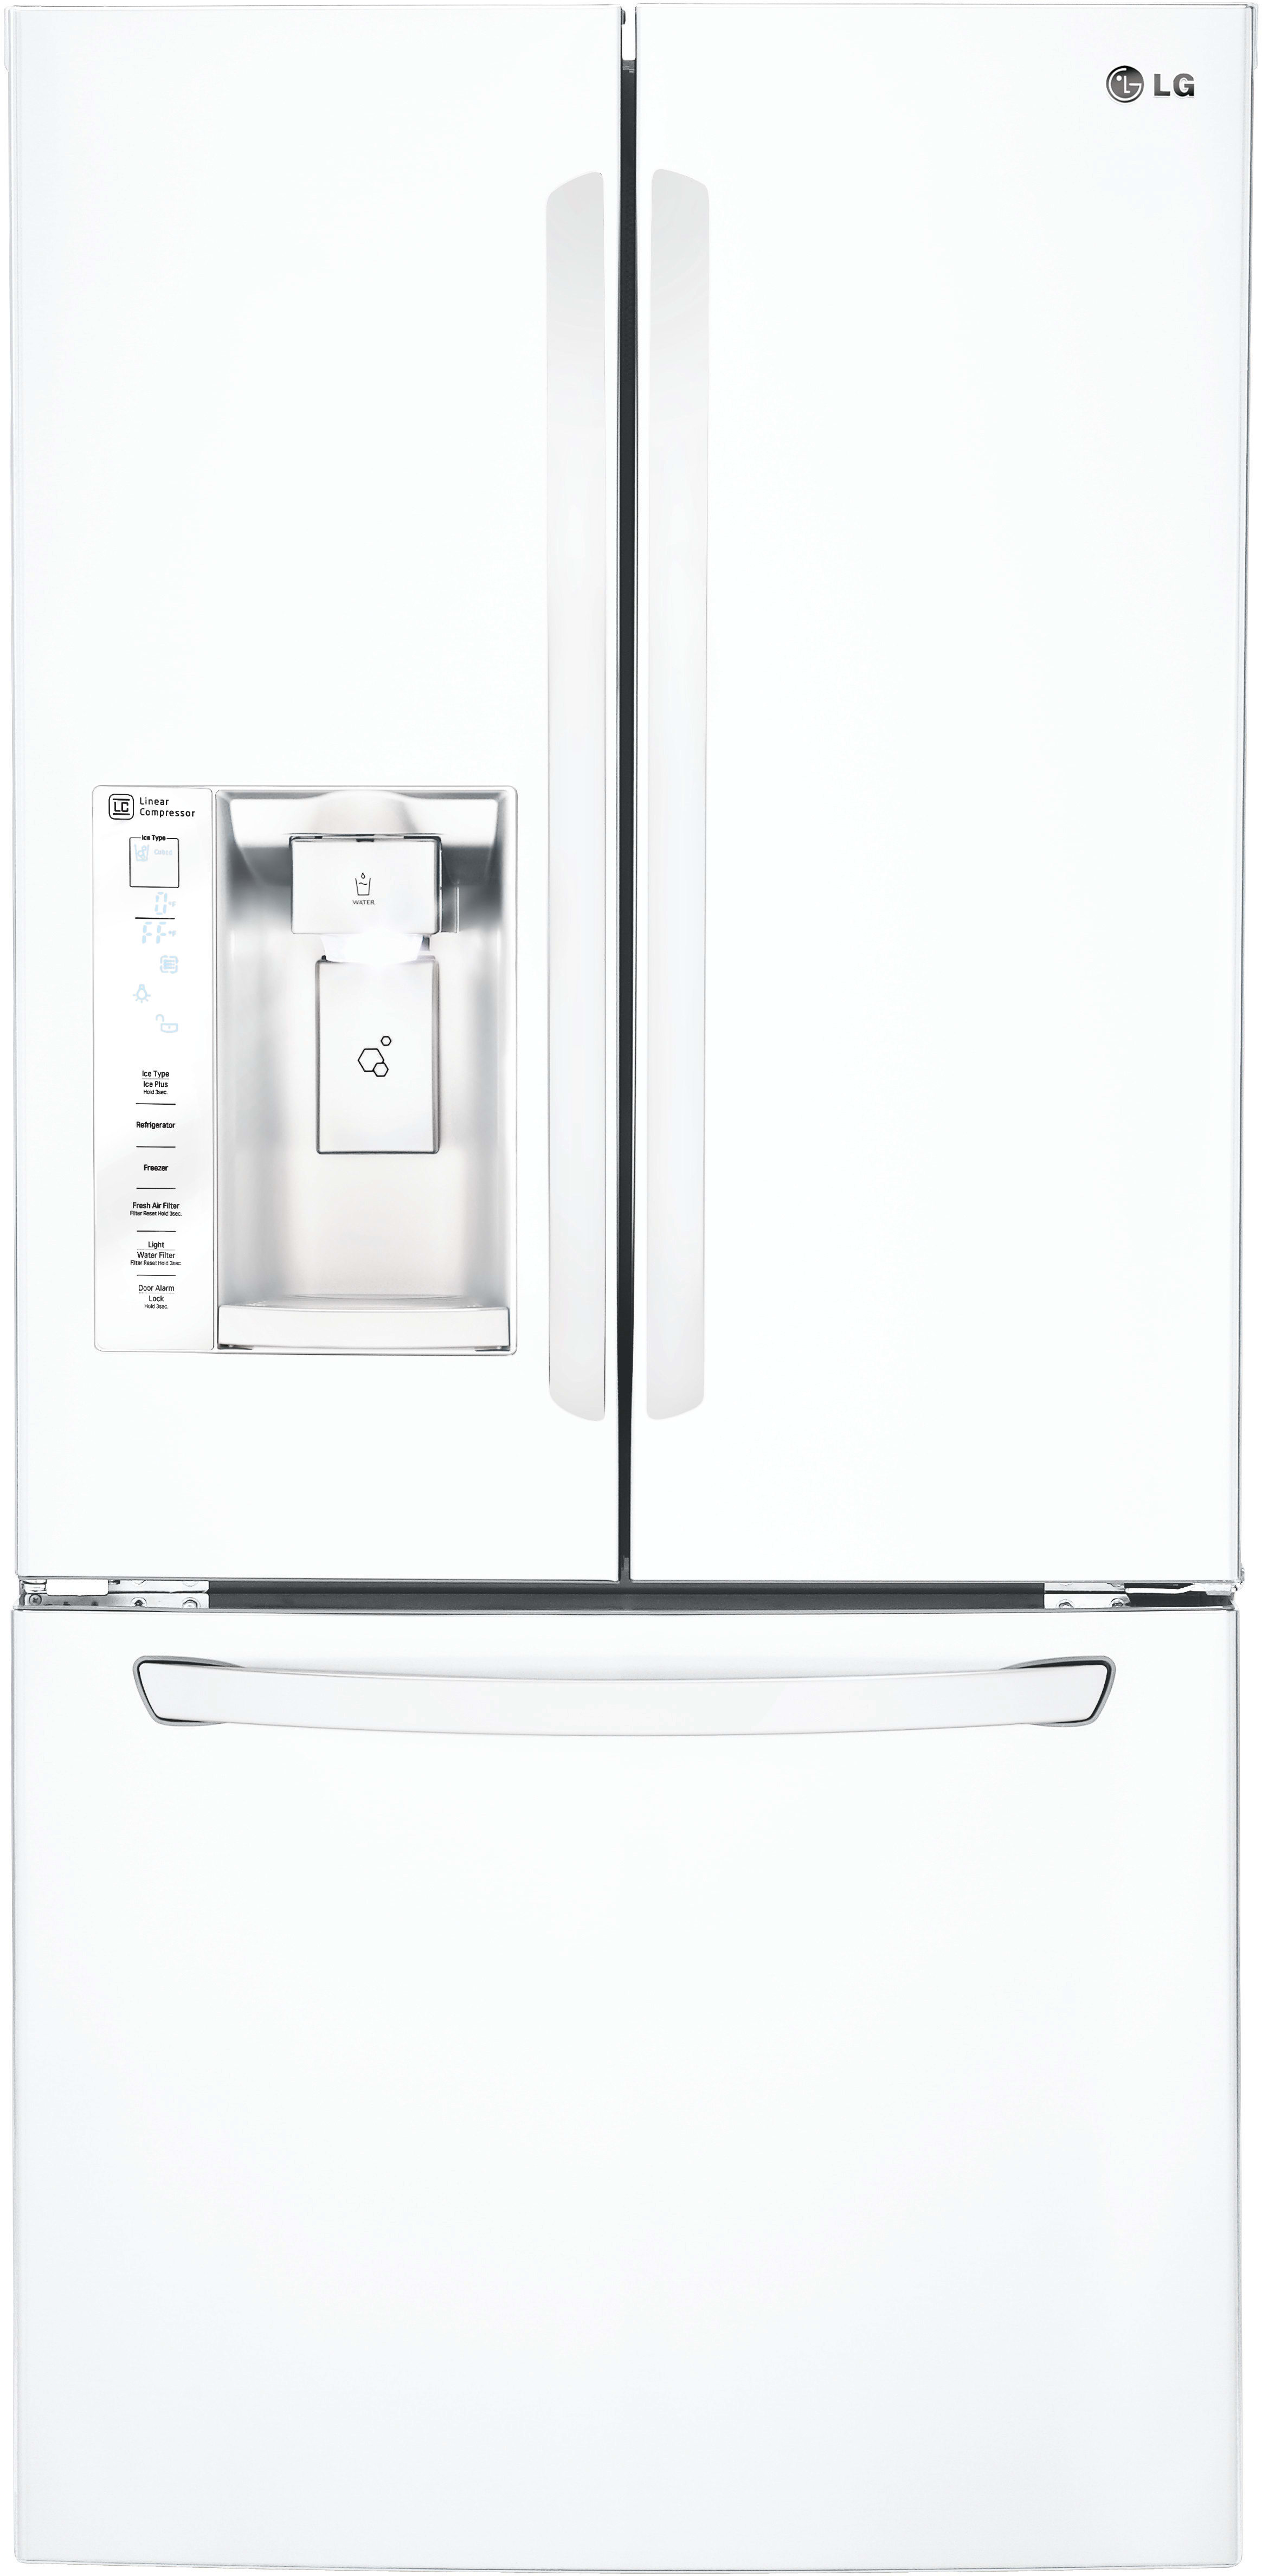 LG LFXS W 33 Inch French Door Refrigerator with Slim SpacePlus